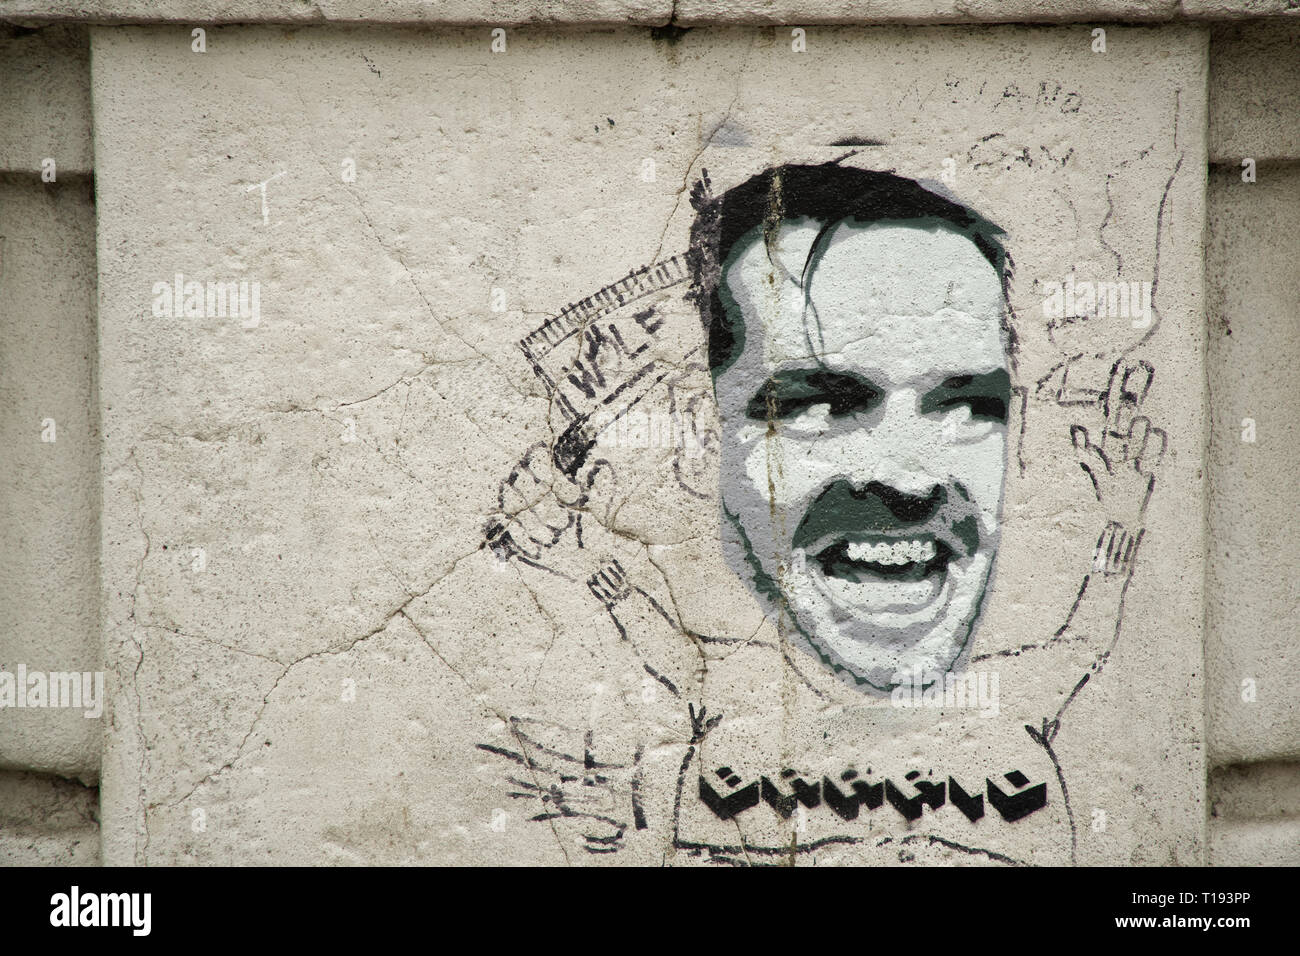 Torino, Italy, 17.03.2019: street art - portrait of Jack Nicholson from movie One Flew Over the Cuckoo's Nest - Stock Image